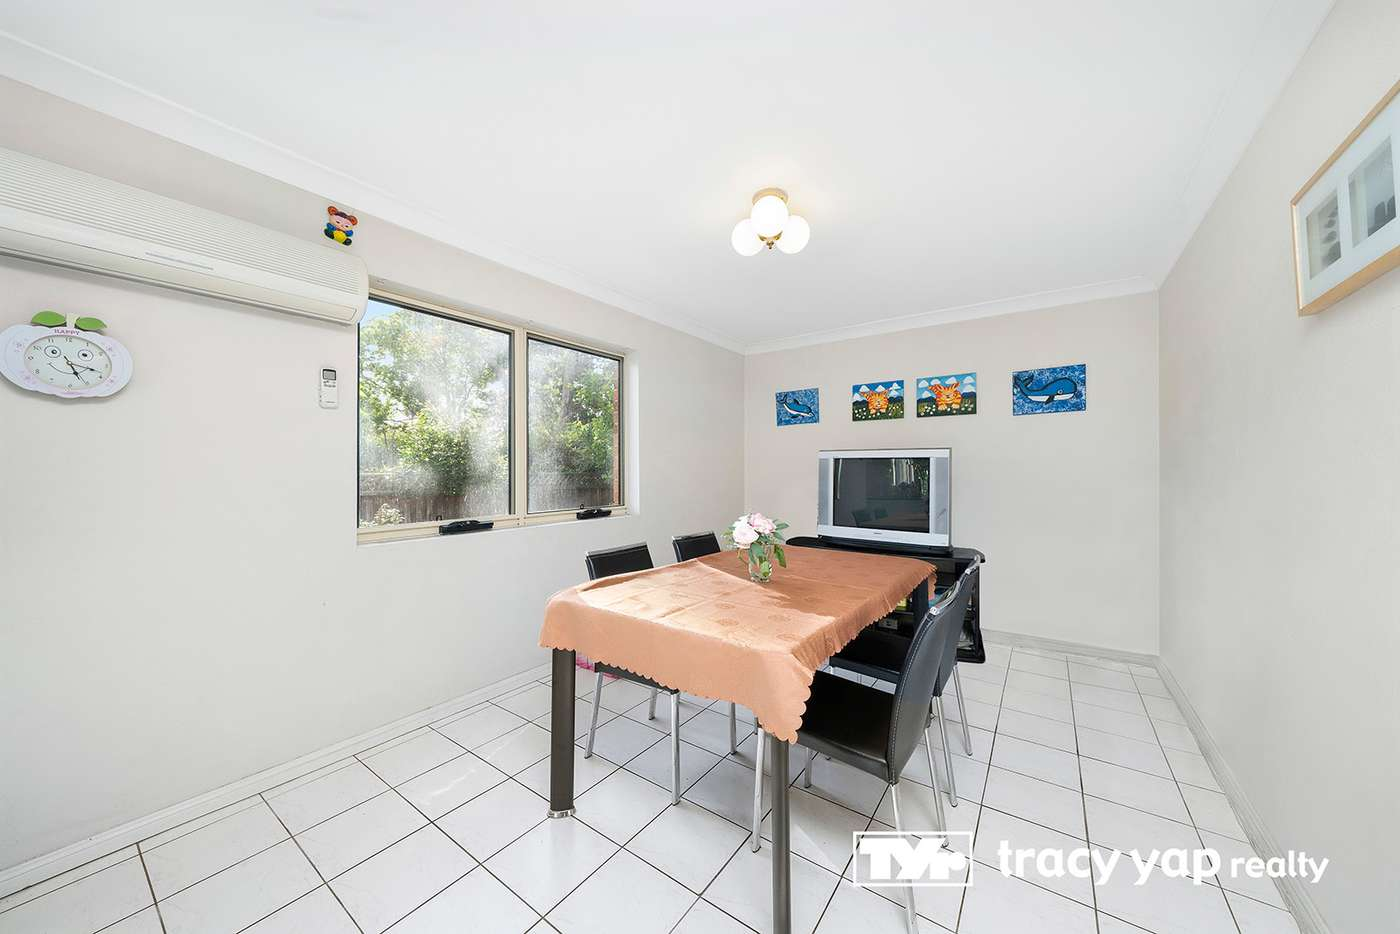 Fifth view of Homely townhouse listing, 4/1 Vista Street, Oatlands NSW 2117